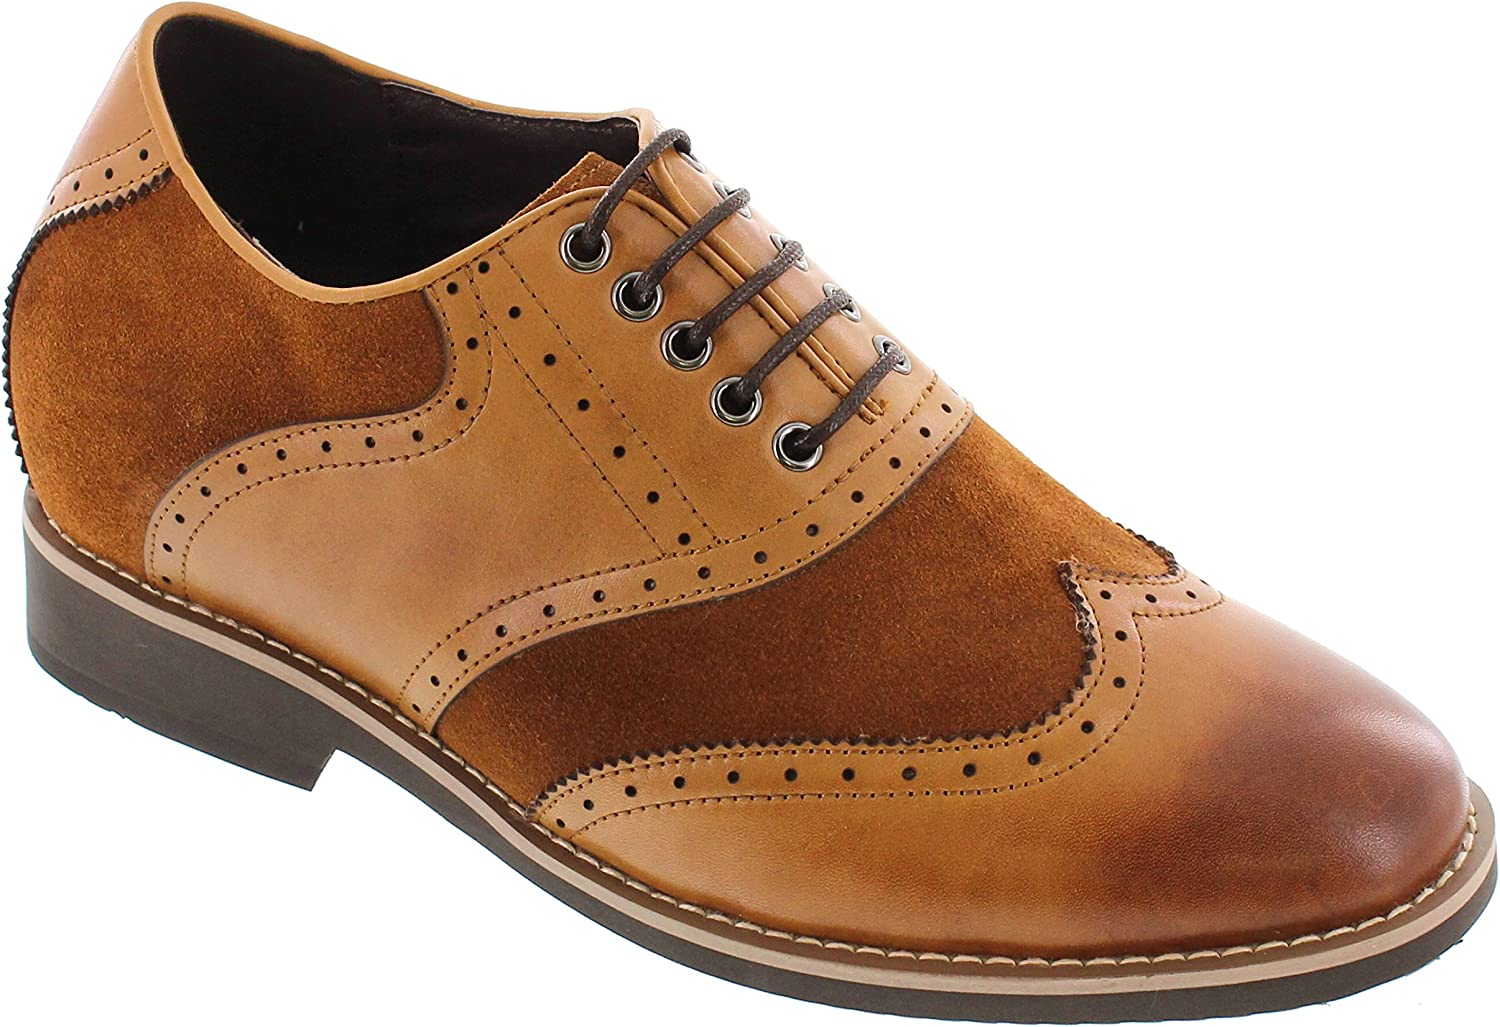 CALTO G65012-3.2 Inches Taller - Height Increasing Elevator shoes - Nubuck Brown Lace-up Wing-tip Dress shoes